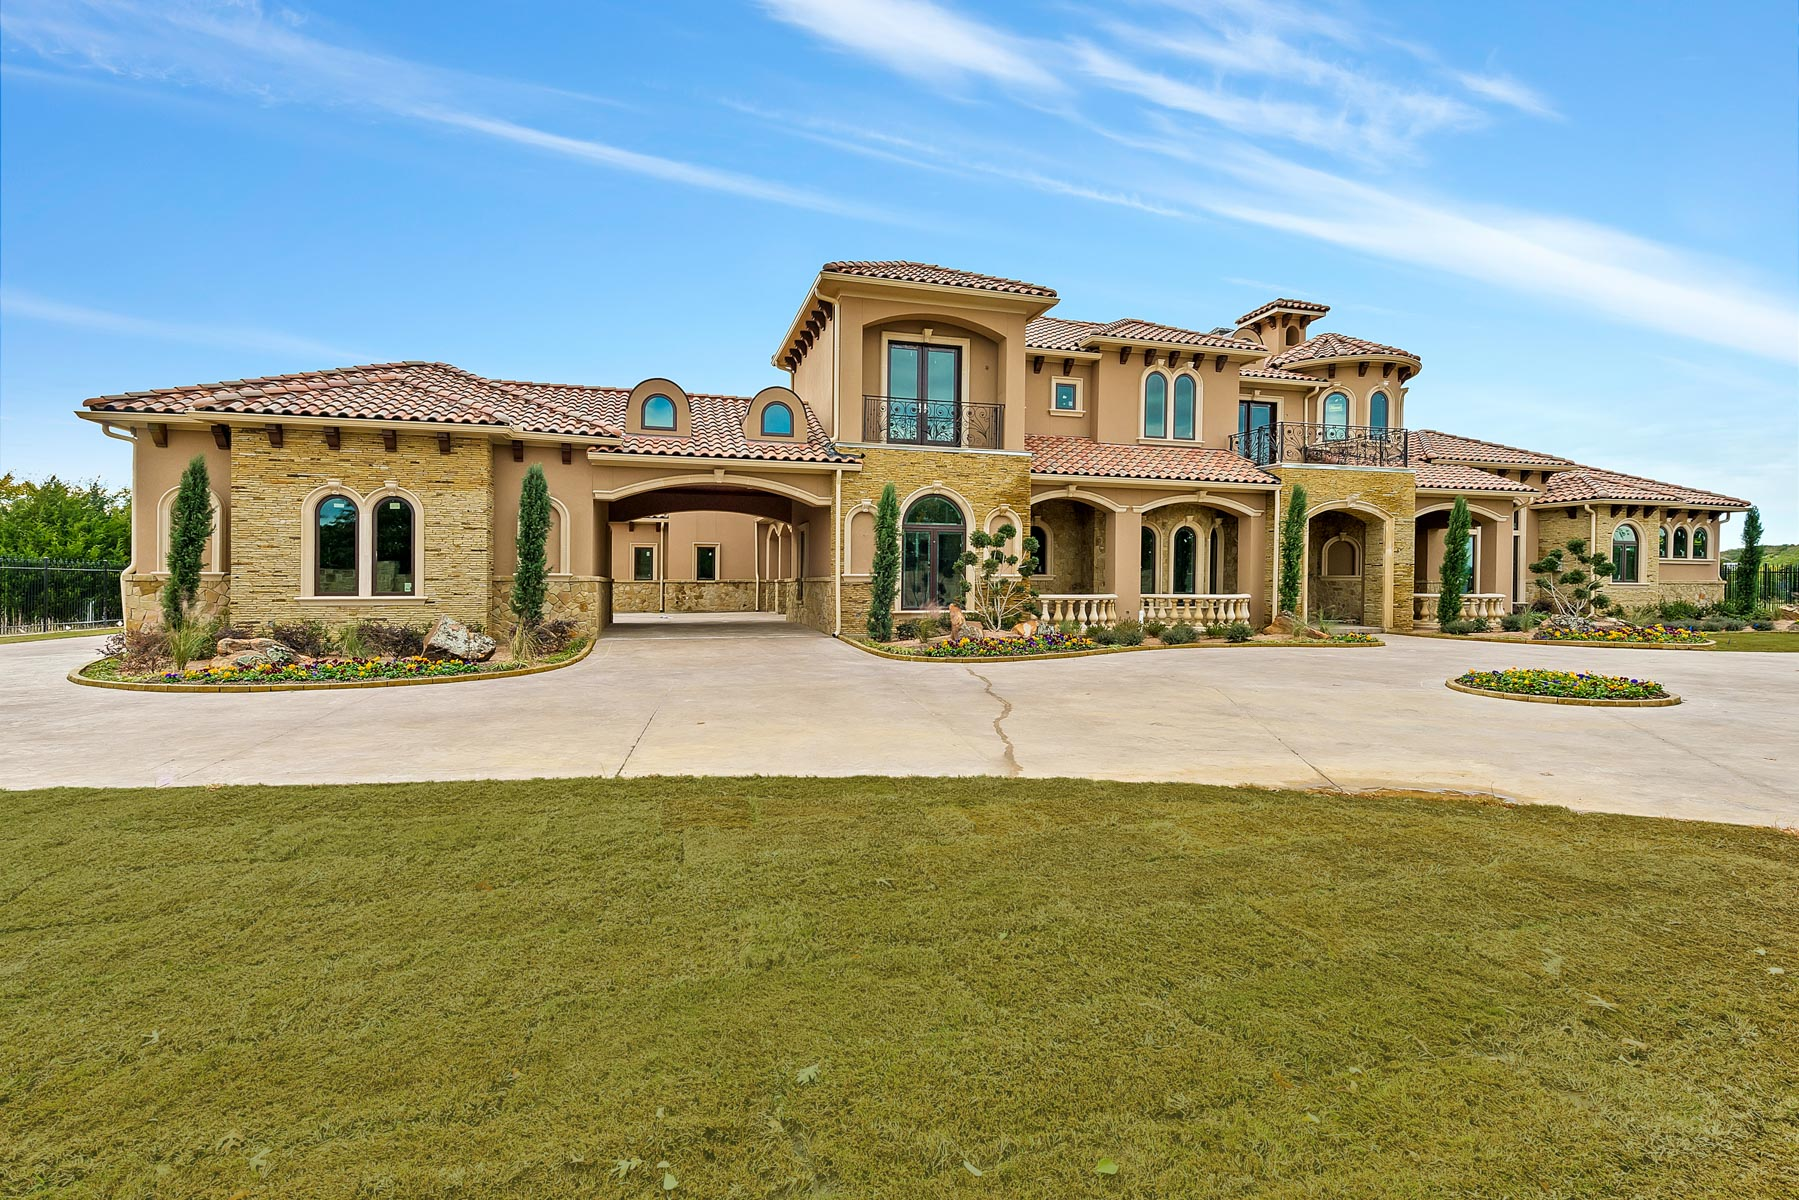 Property For Sale at Incredible Mediterranean Estate on One Acre